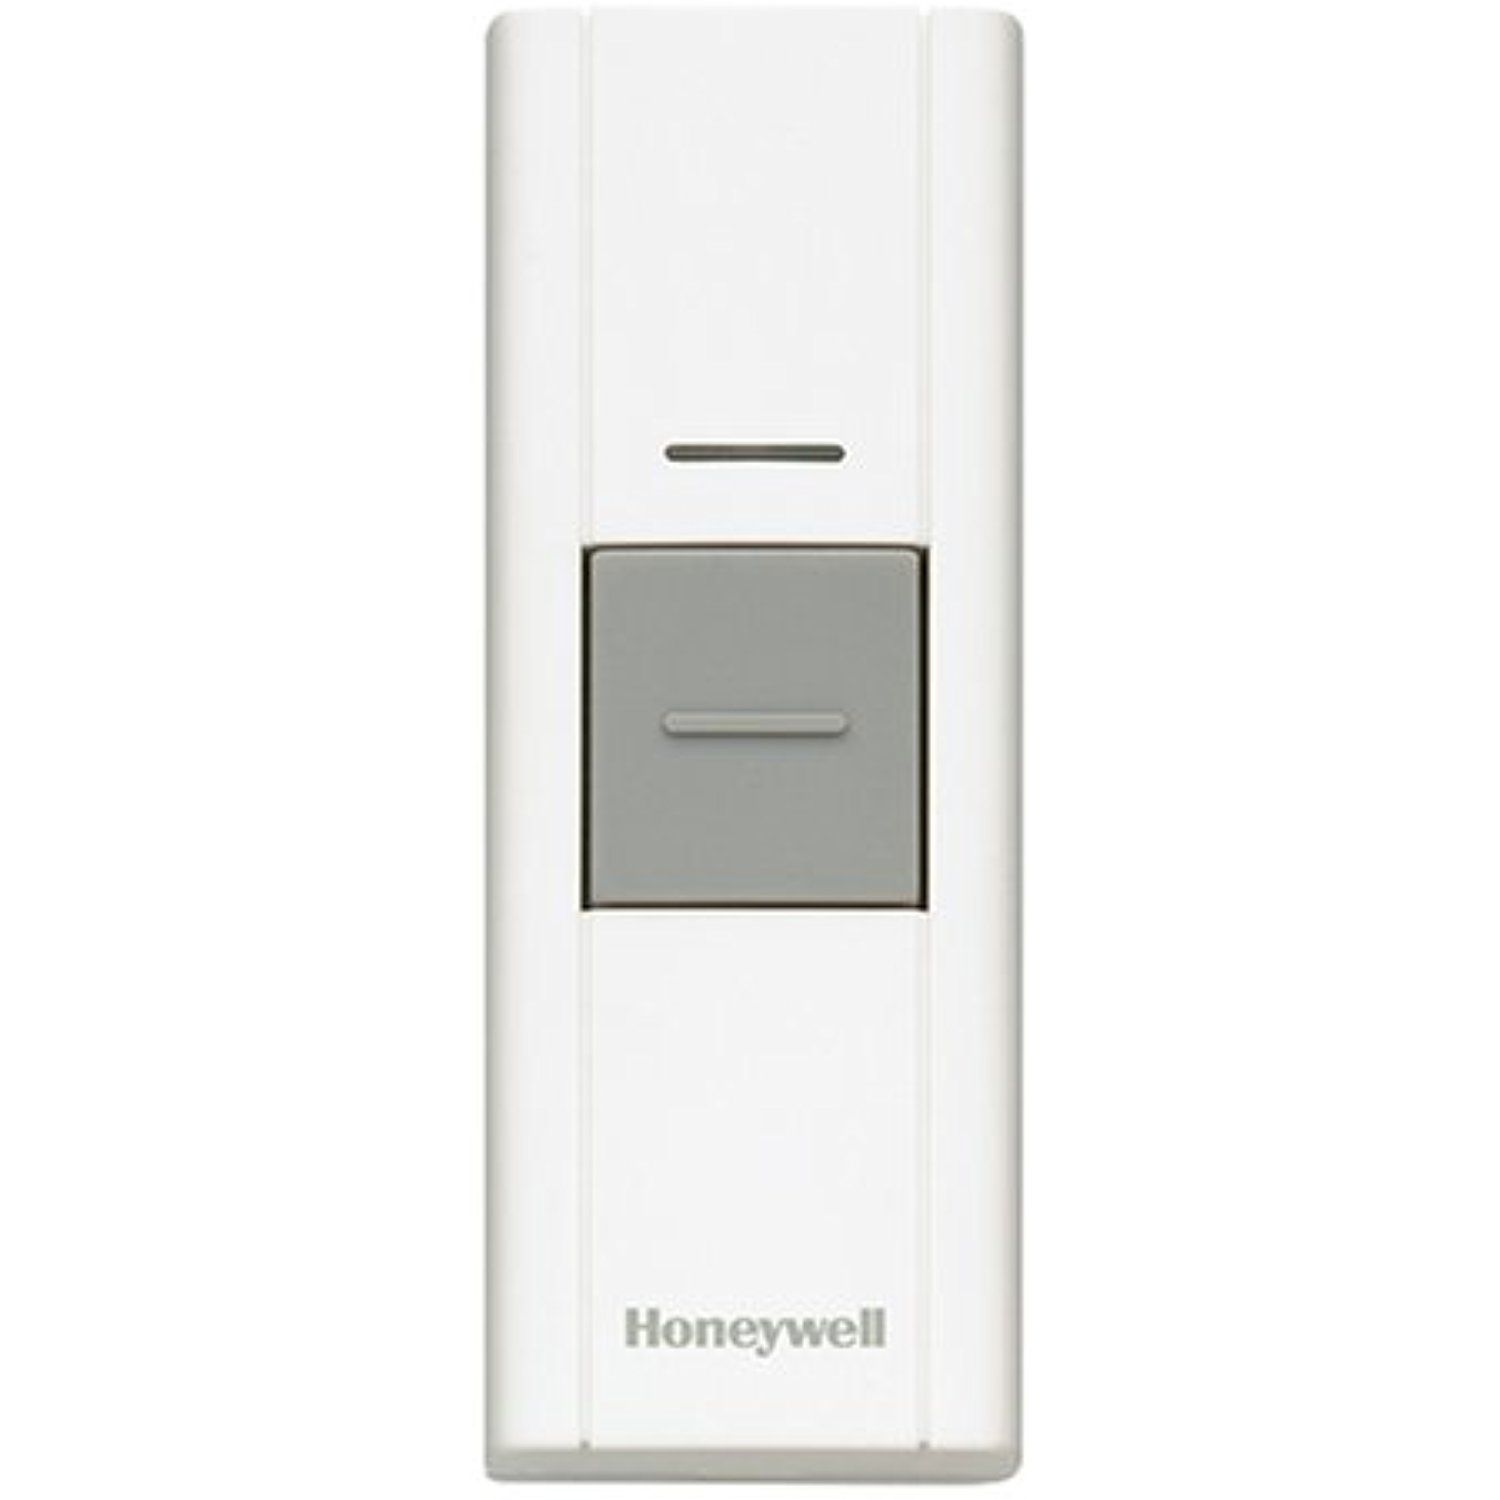 Honeywell Rpwl300a1007 A Decor Wireless Surface Mount Push Button Click Image To Review More Details This Is An Affiliate Link Honeywell Wireless Chimes